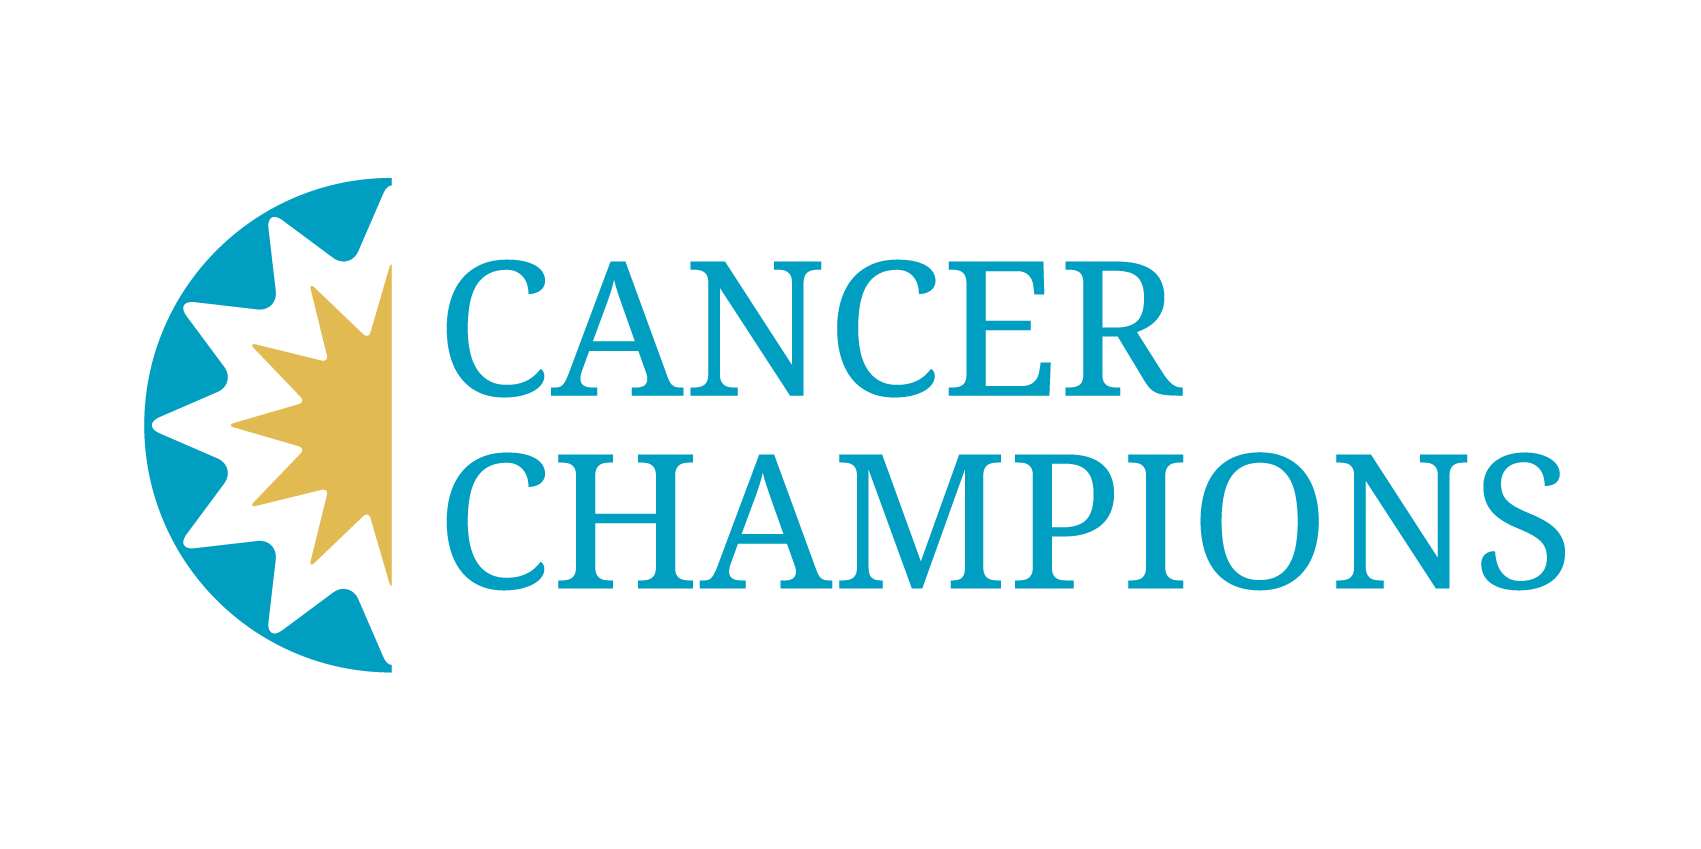 Cancer-Champions health-care consulting